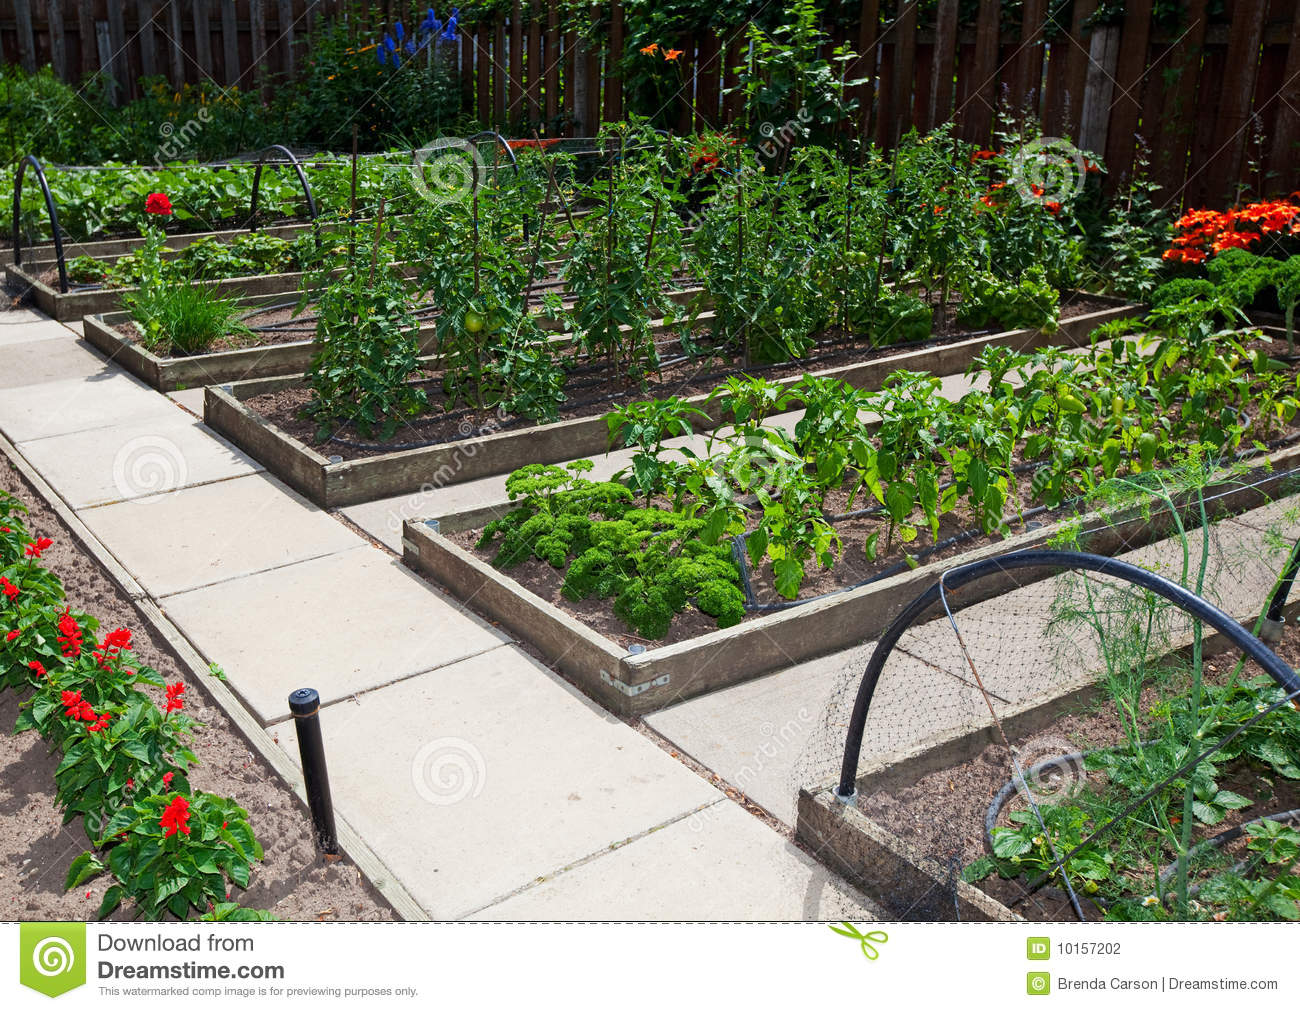 garden design with raised vegetable garden beds stock photography image with landscaping borders from dreamstime